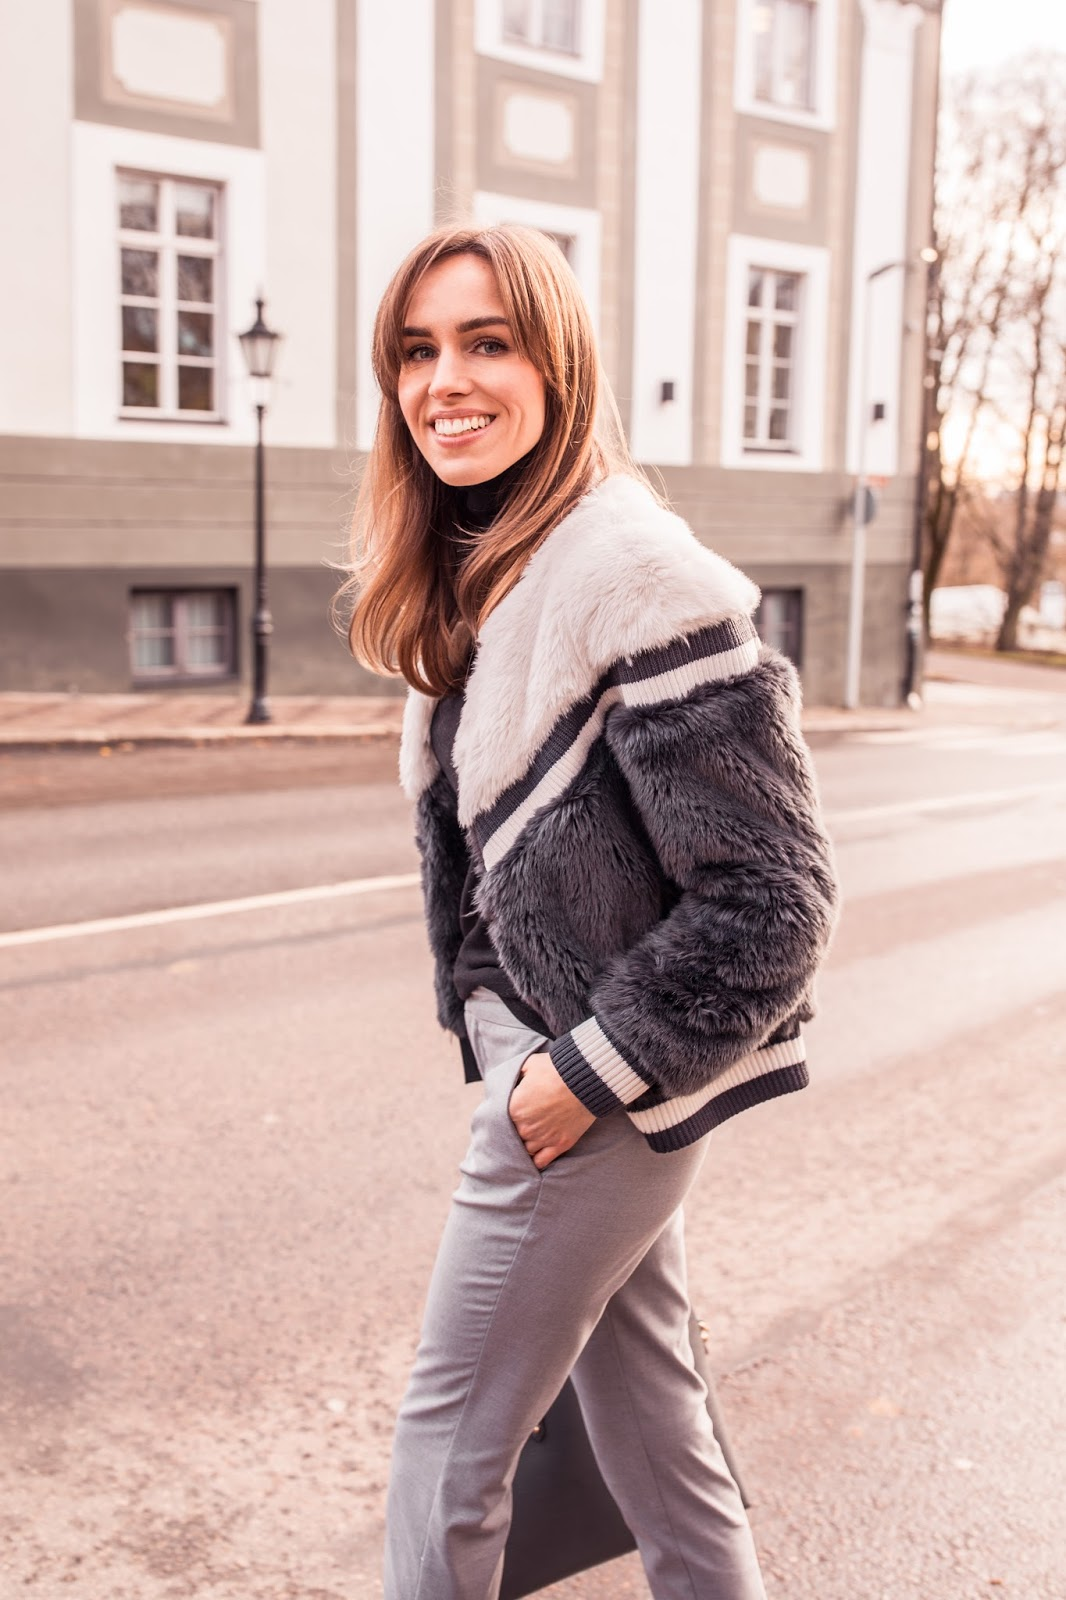 trussardi jeans furry jacket outfit